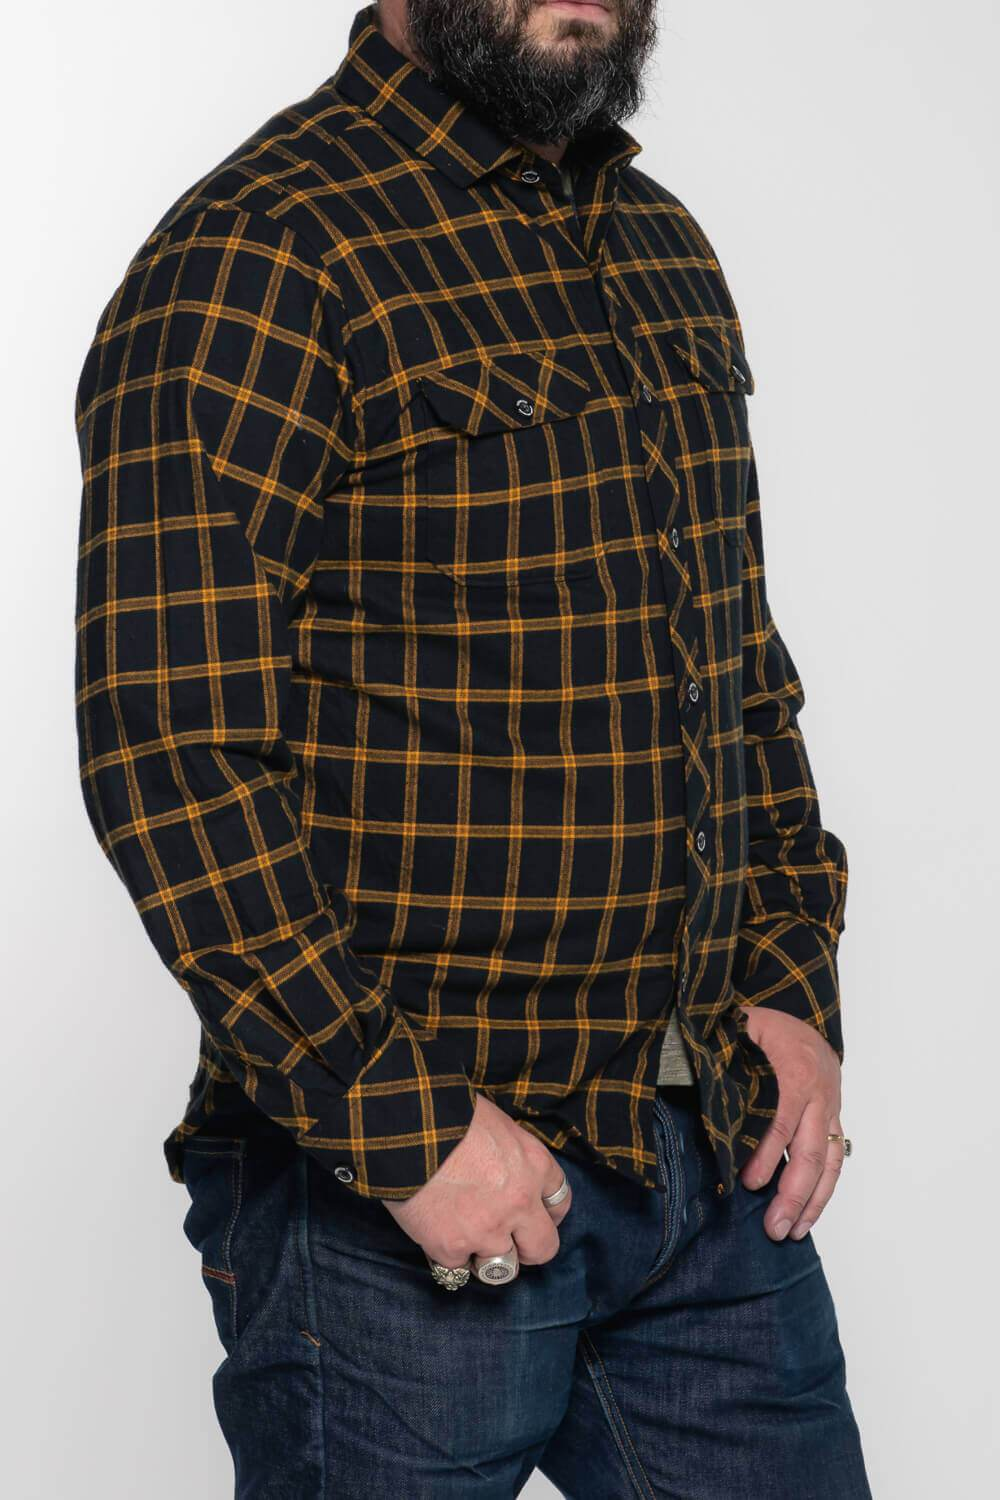 Tobacco Flannel - Blk/Yellow